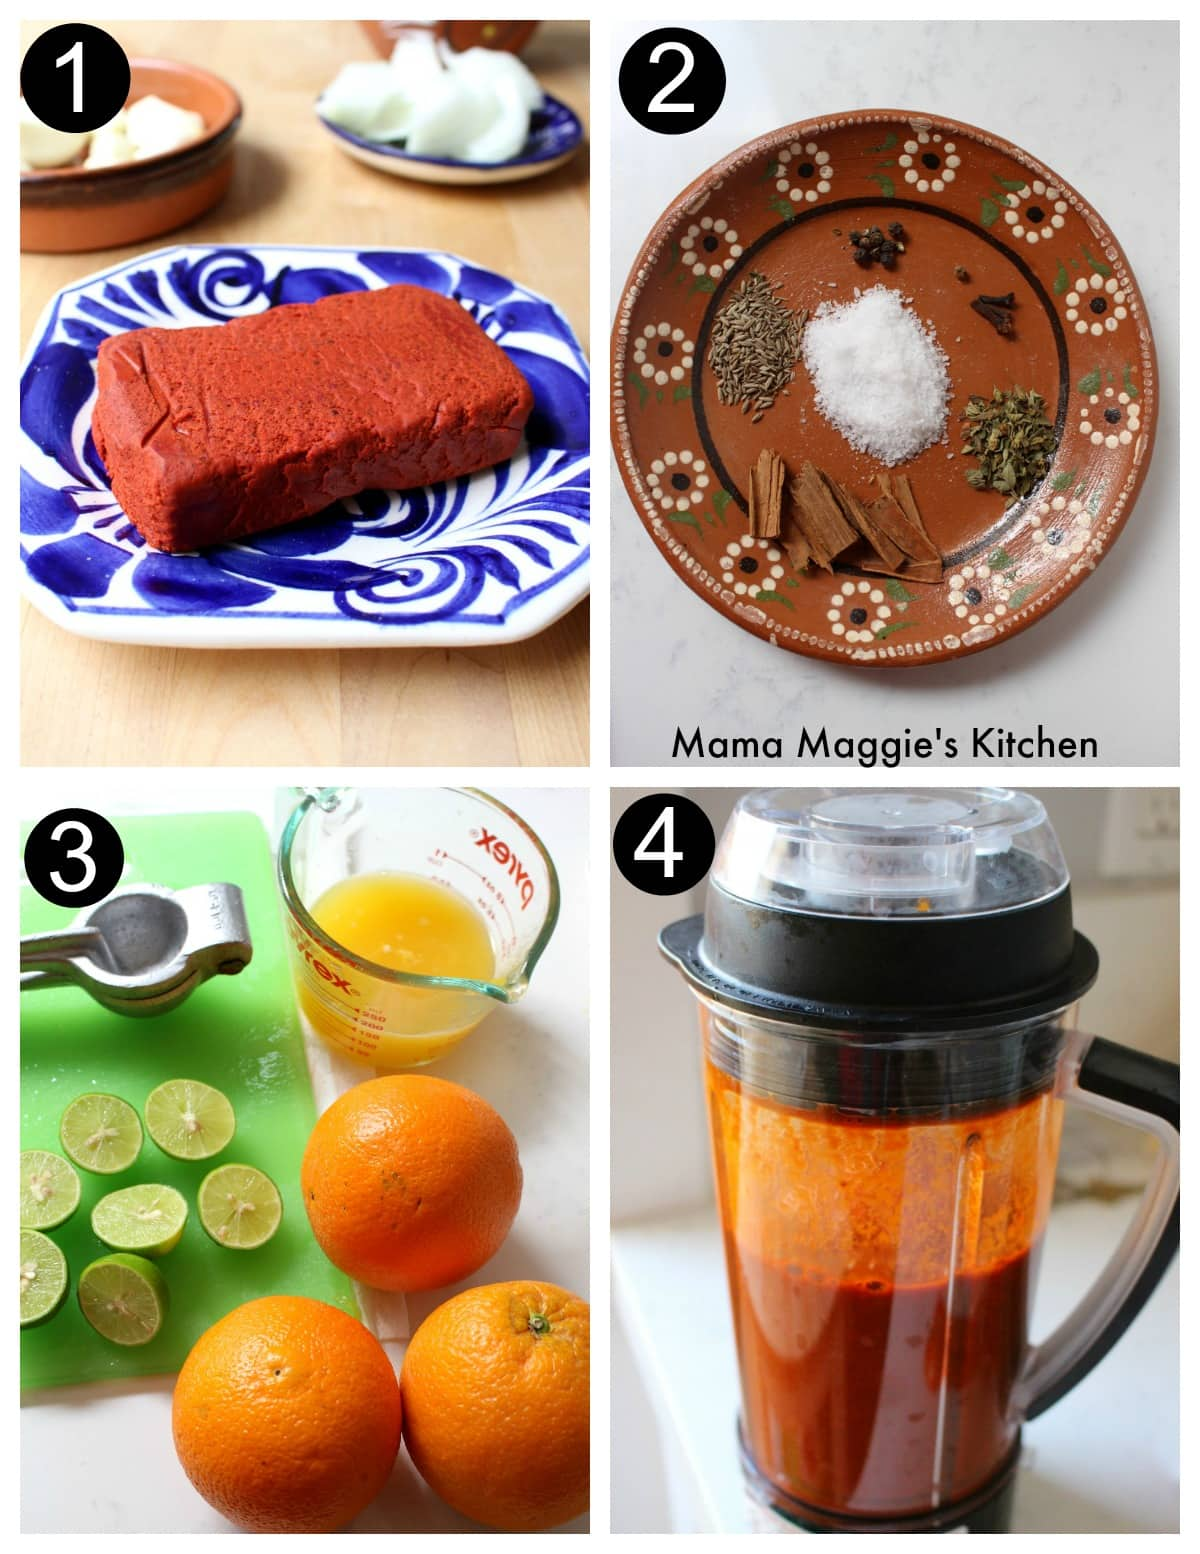 A collage showing the process of how to make the pibil sauce.